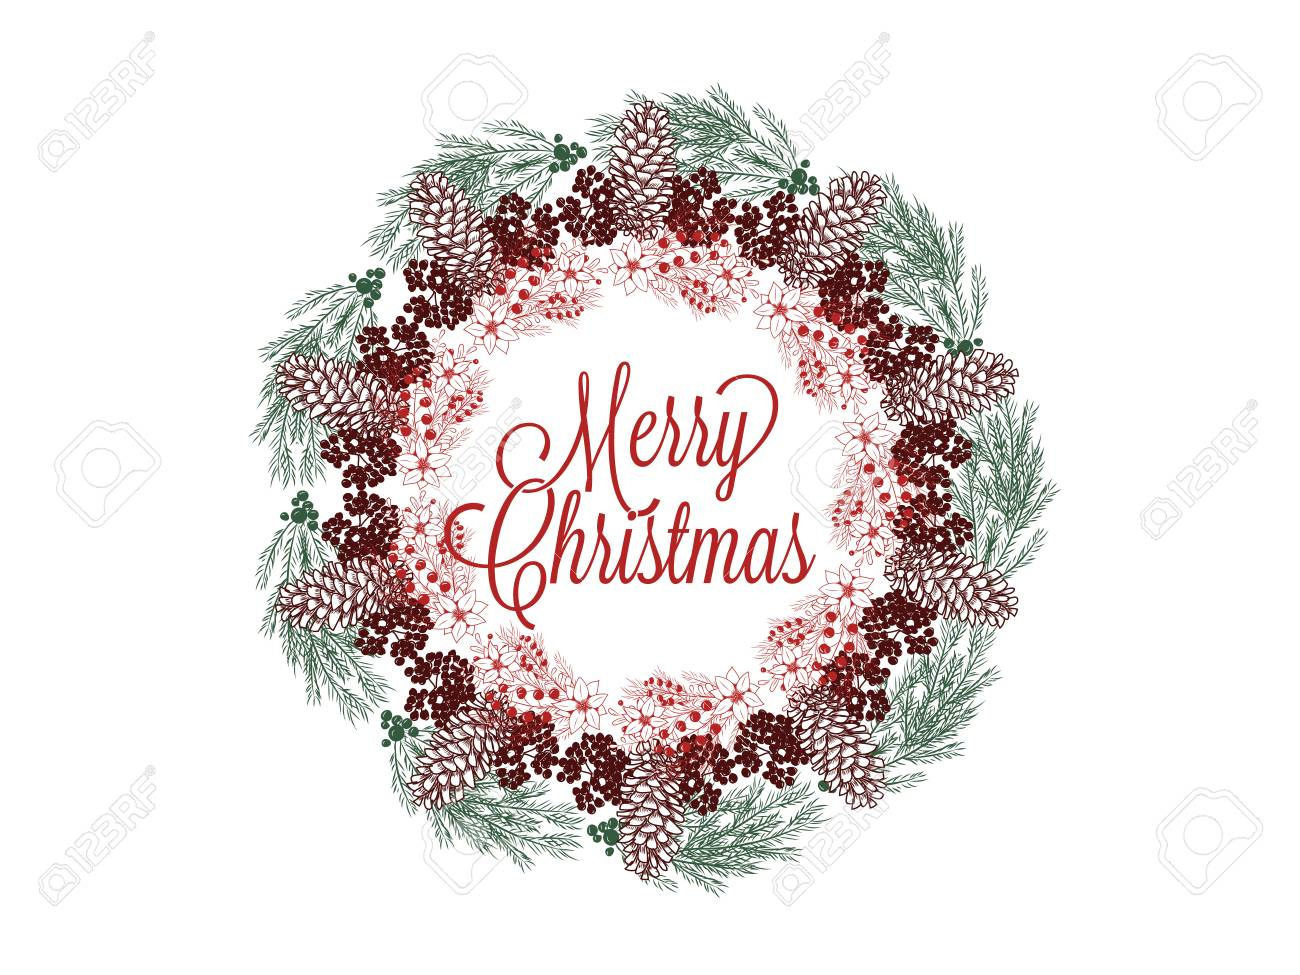 Christmas wreath hand drawn illustration for greeting cards isolated on white Stock Vector - 90581745